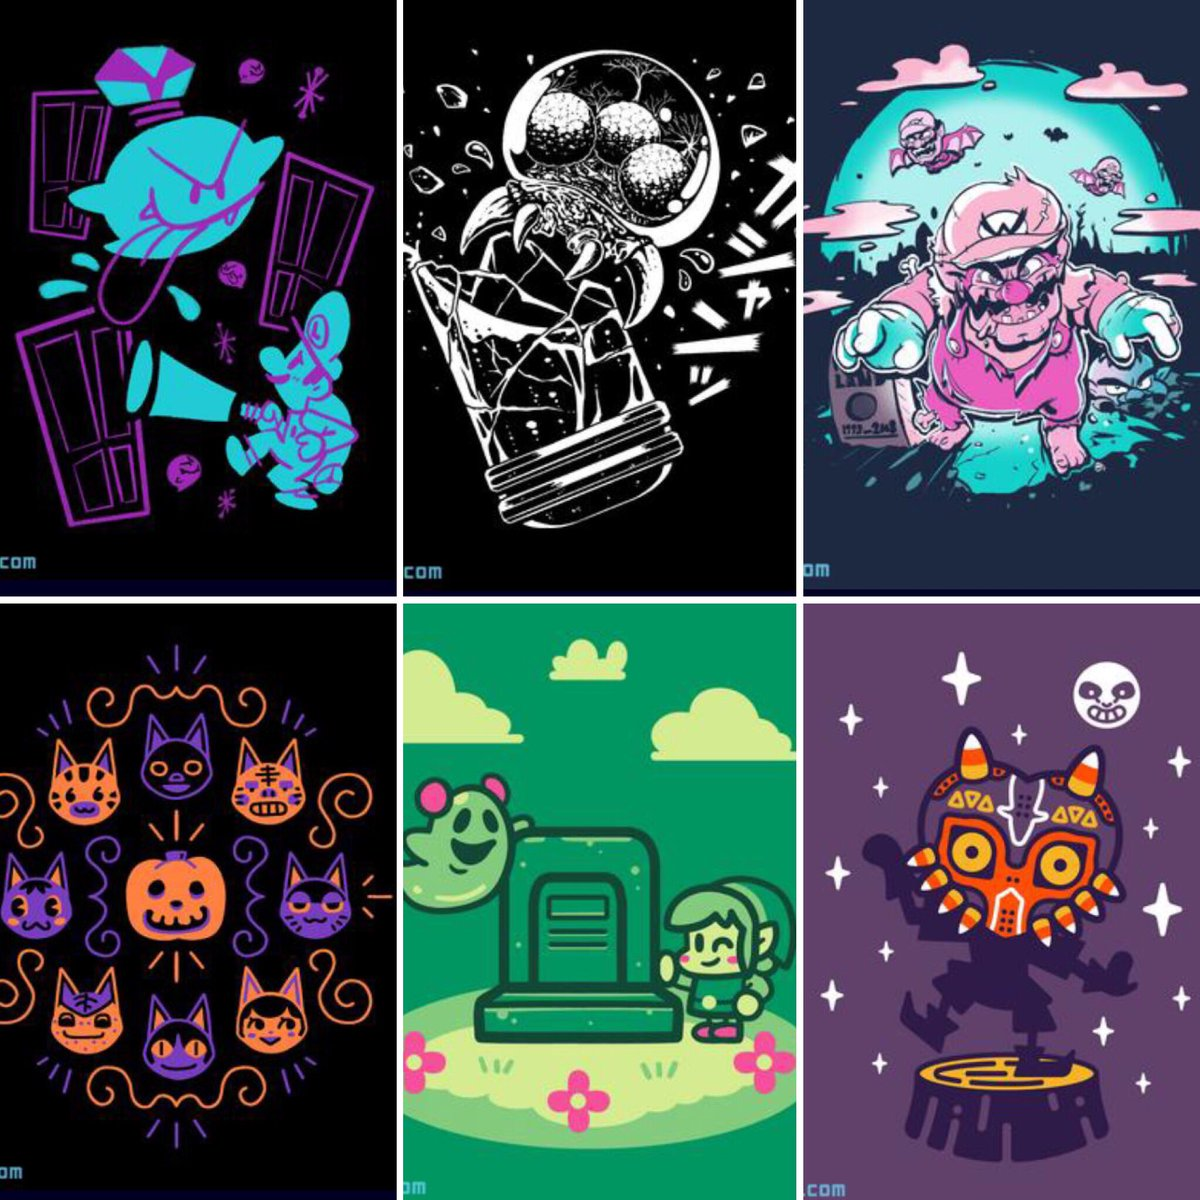 The Yetee On Twitter We Get This A Lot Dance of the moonlight jellies. the yetee on twitter we get this